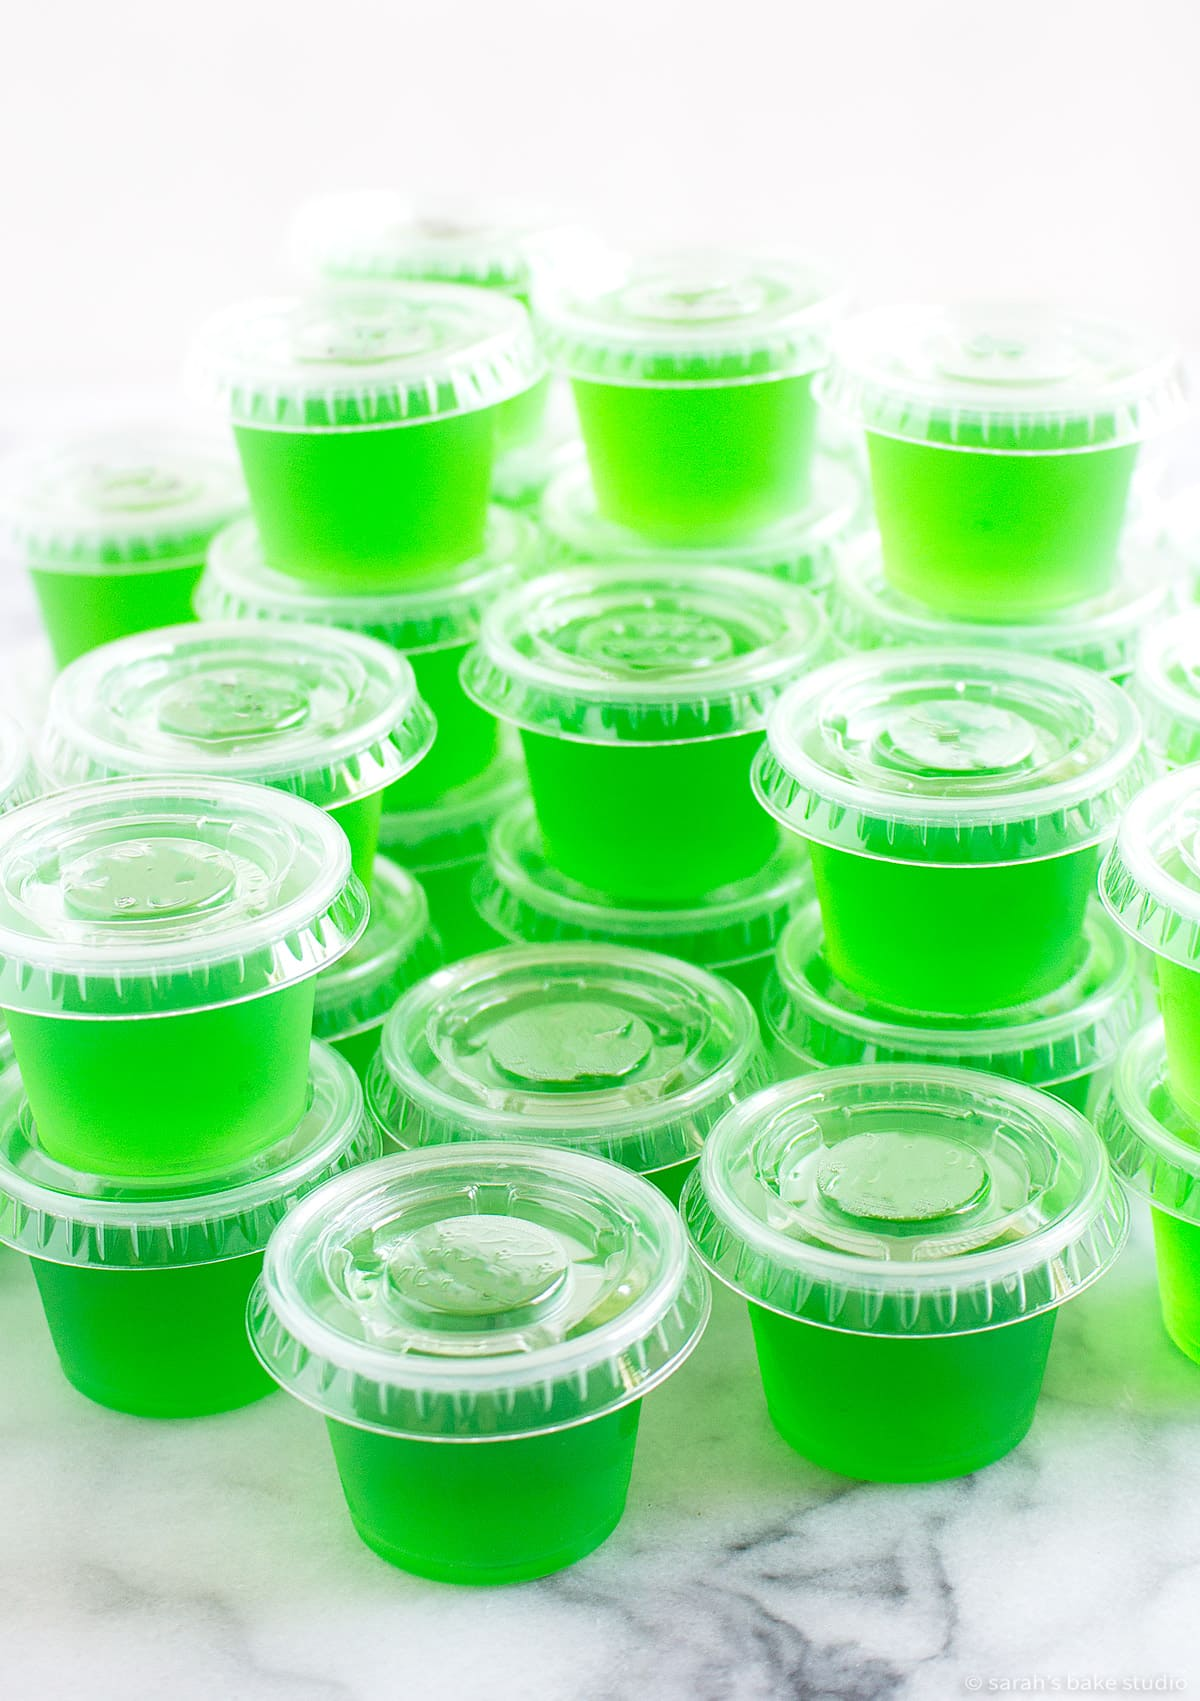 jolly rancher jello shots in plastic one-ounce cups with lids